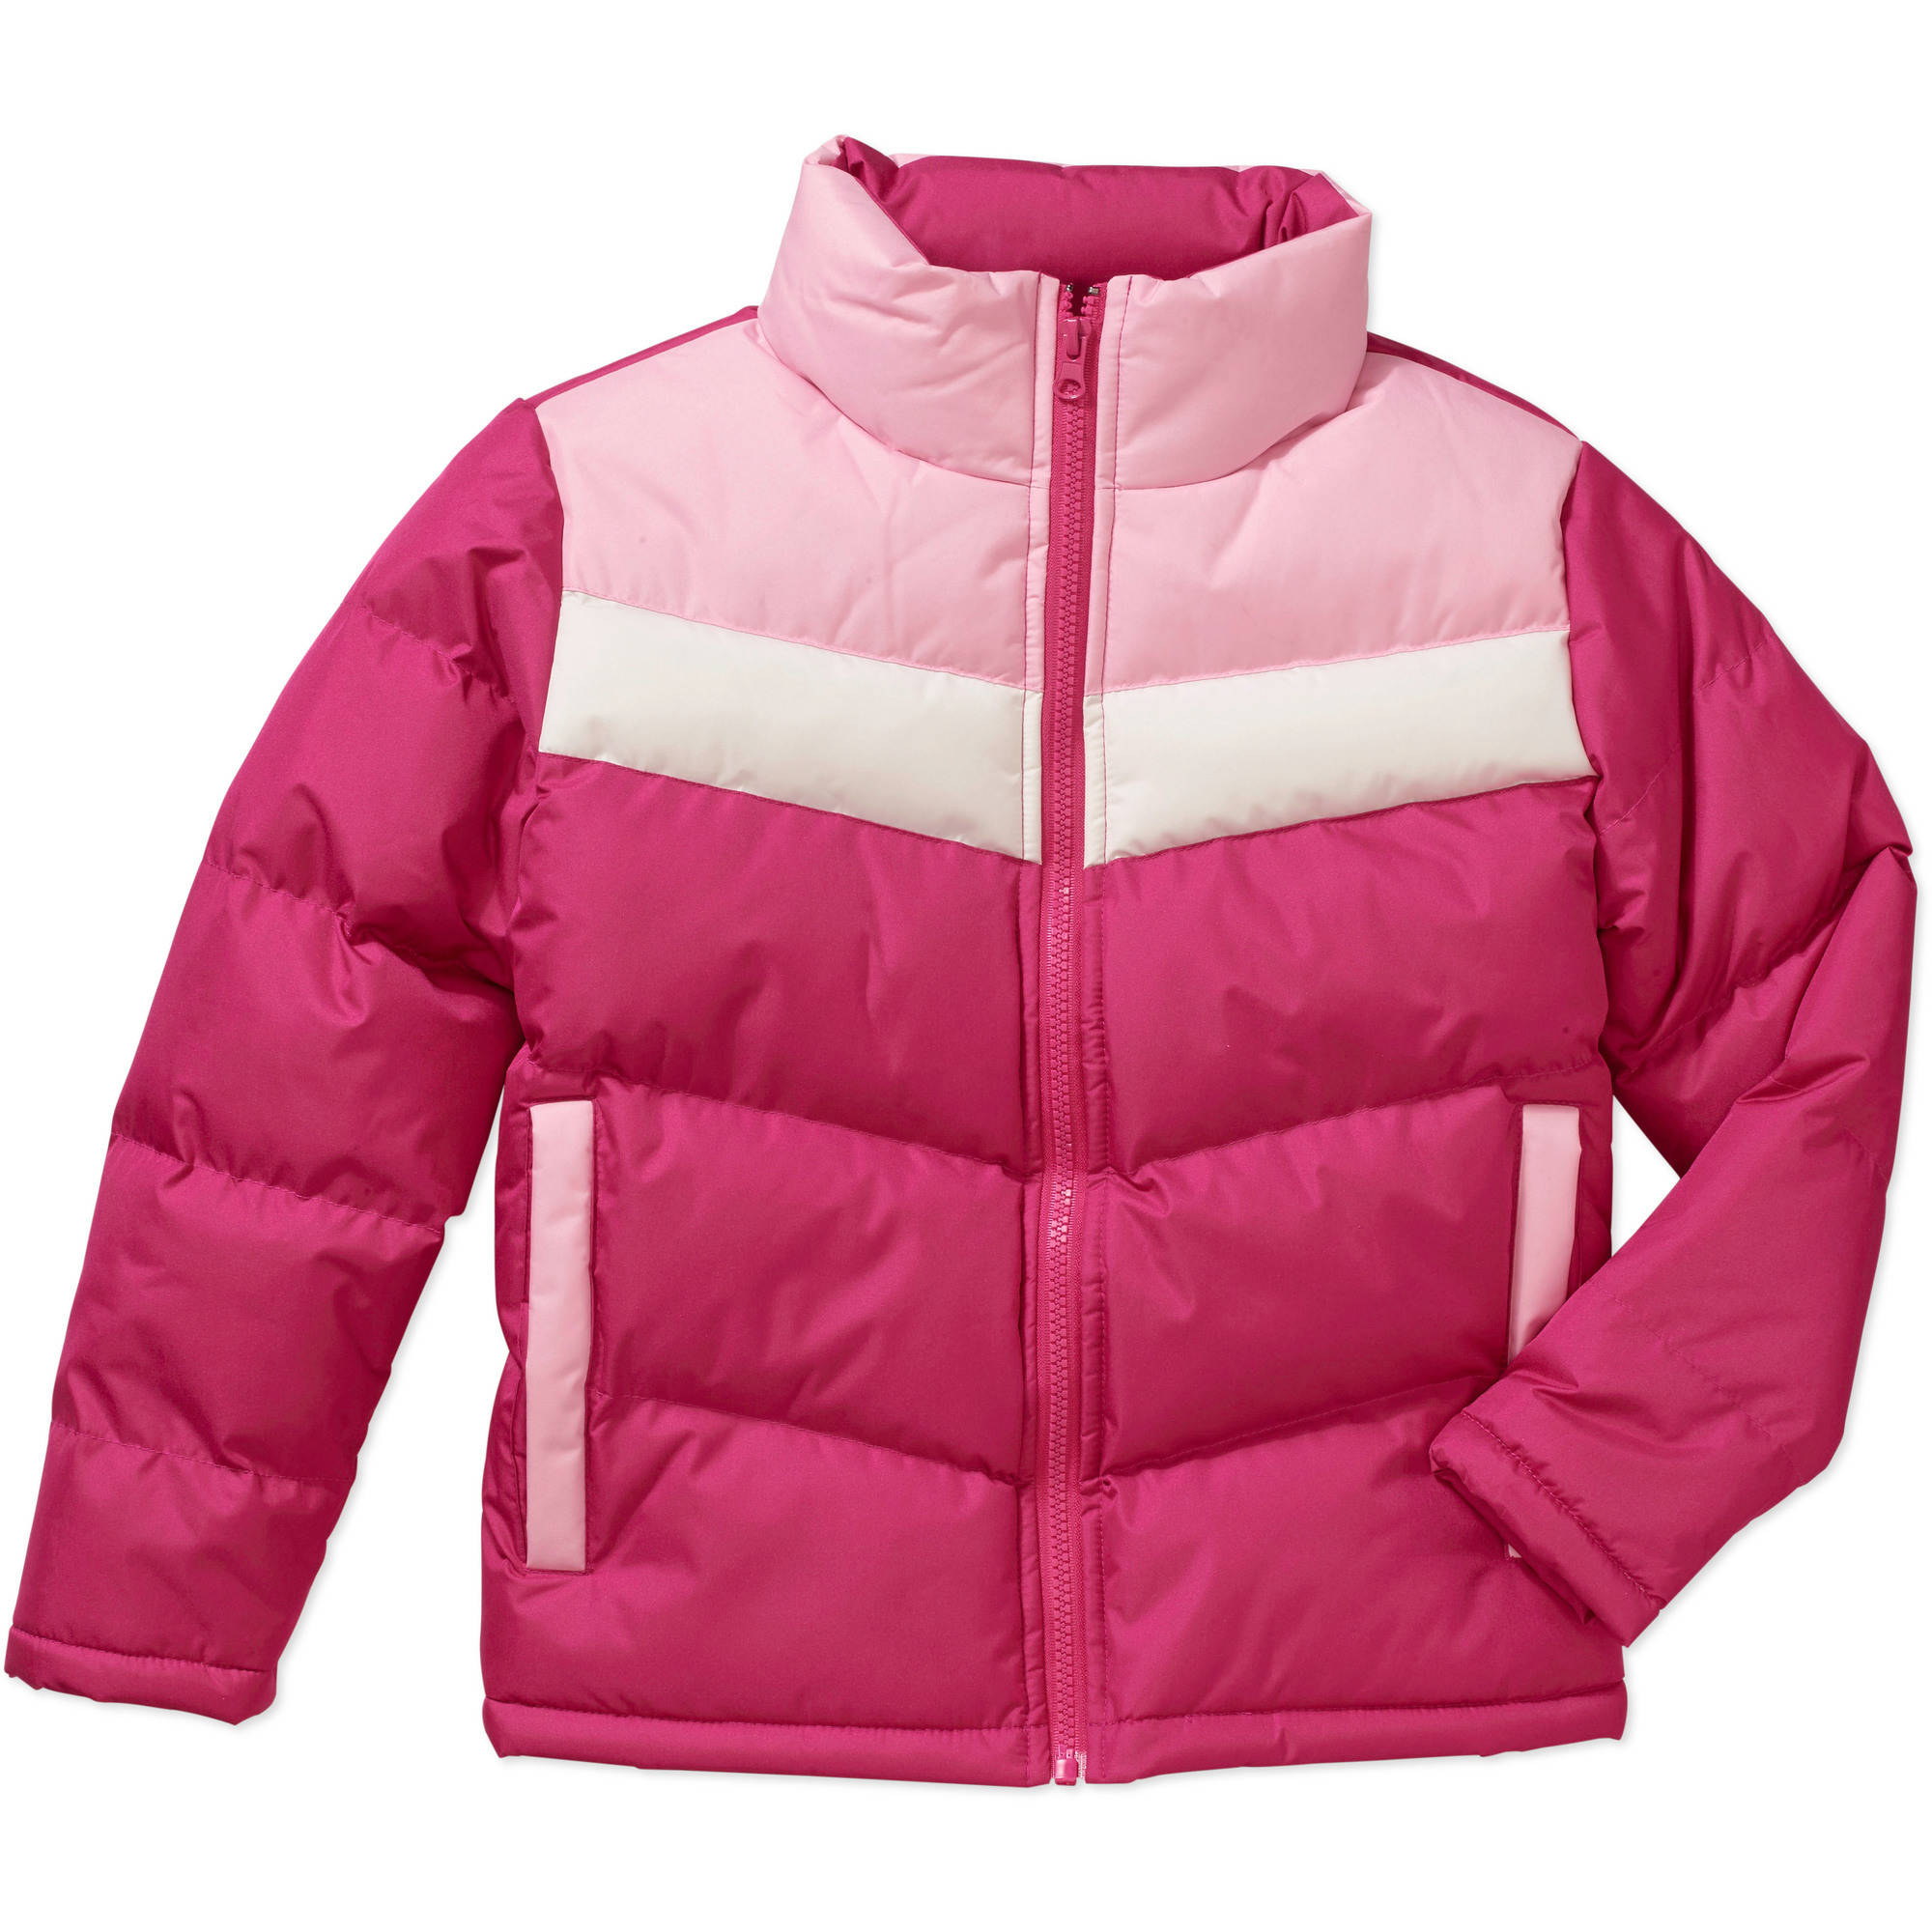 Climate Concepts Girls' Color Blocked Puffer Jacket